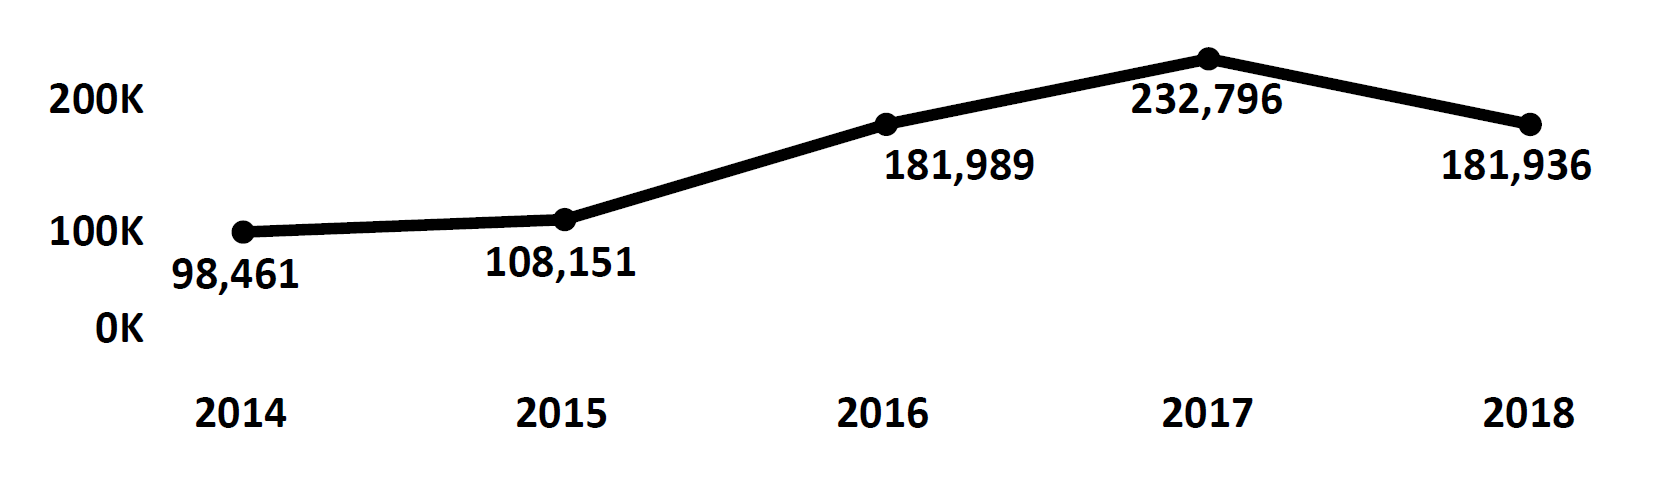 Graph of Do Not Call complaints recorded in Virginia from fiscal year 2014 to fiscal year 2018. In 2014 there were 98,461 complaints filed, which increased each year peaking at 232,796 in 2017. In 2018 there were 181,936 complaints filed.